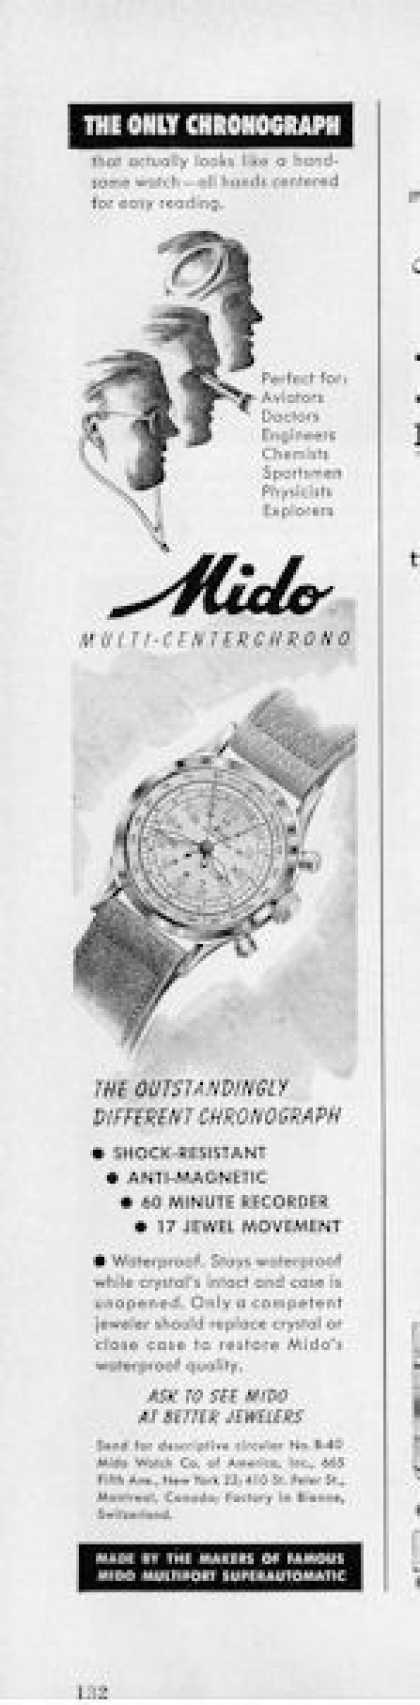 Mido Multi- Centerchrono Watch (1950)